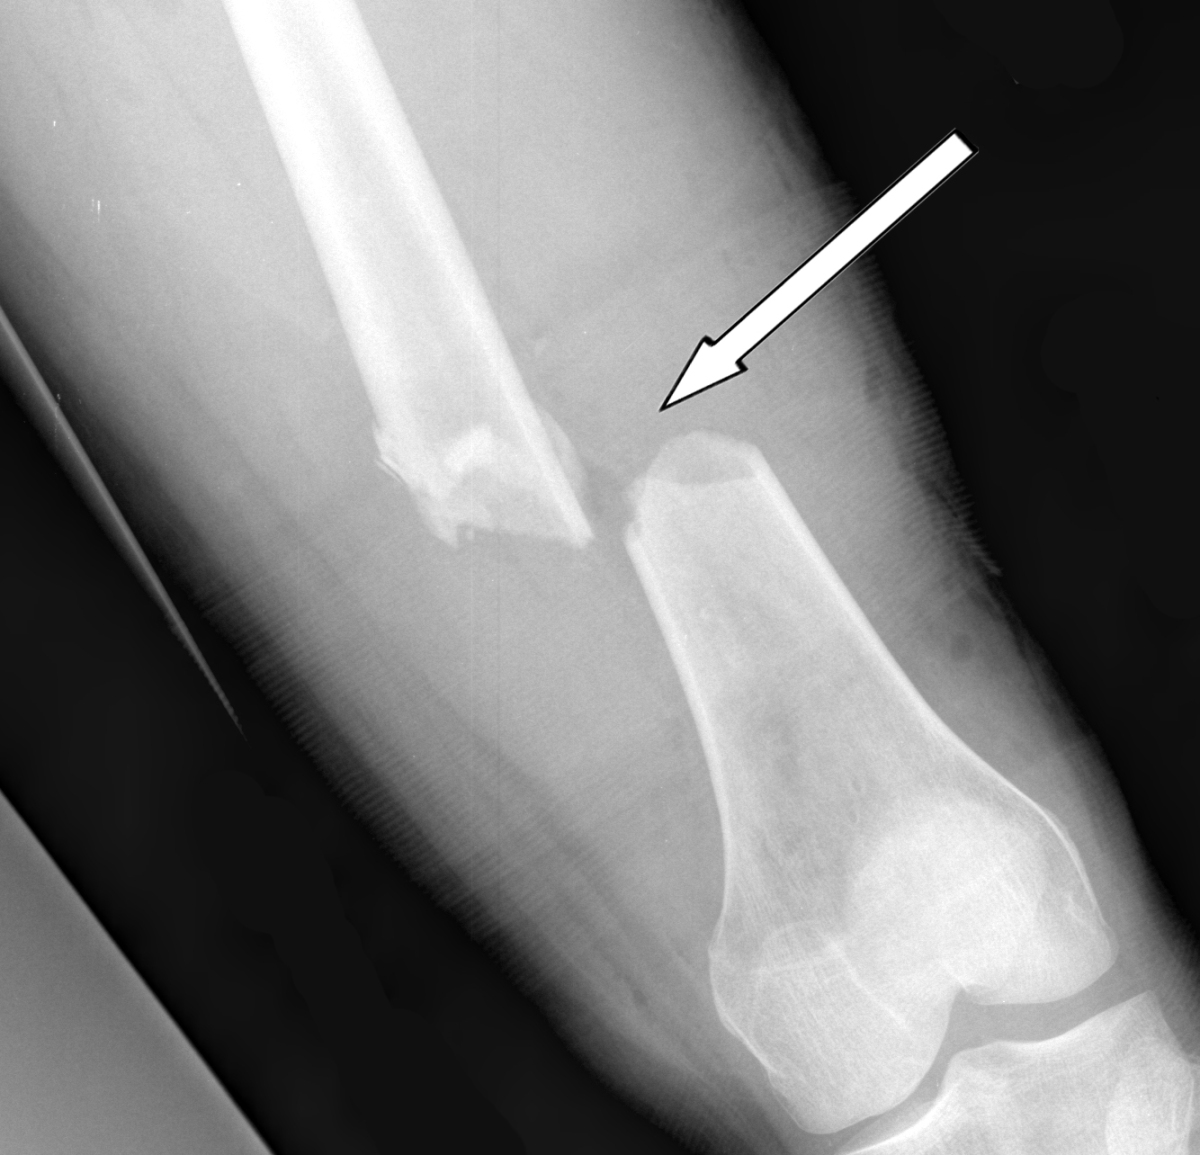 """Arrow Sign"" on Imaging Correlated with Significant Radiologic Findings"